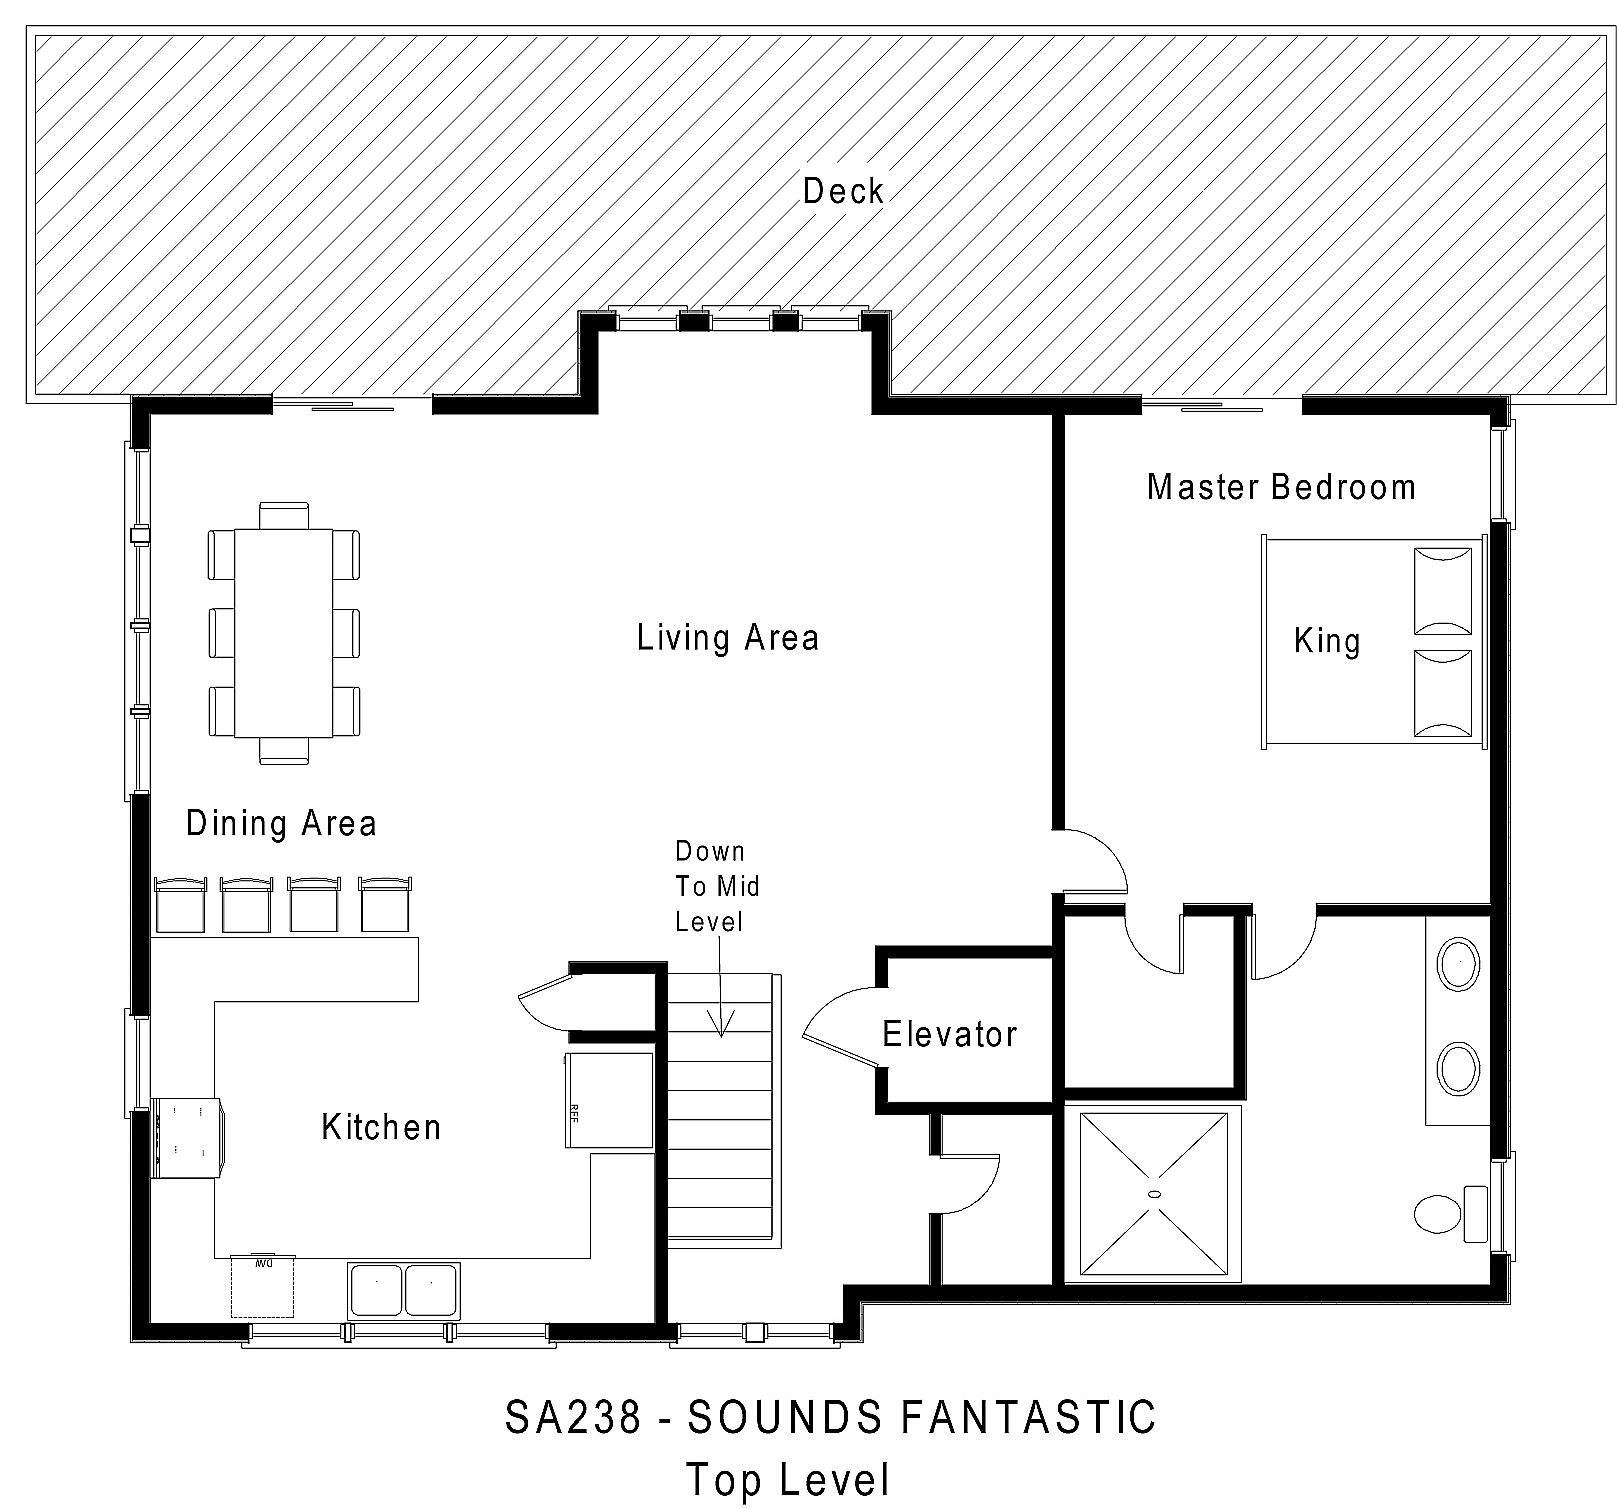 SA238 Sounds Fantastic - Floorplan Level 3